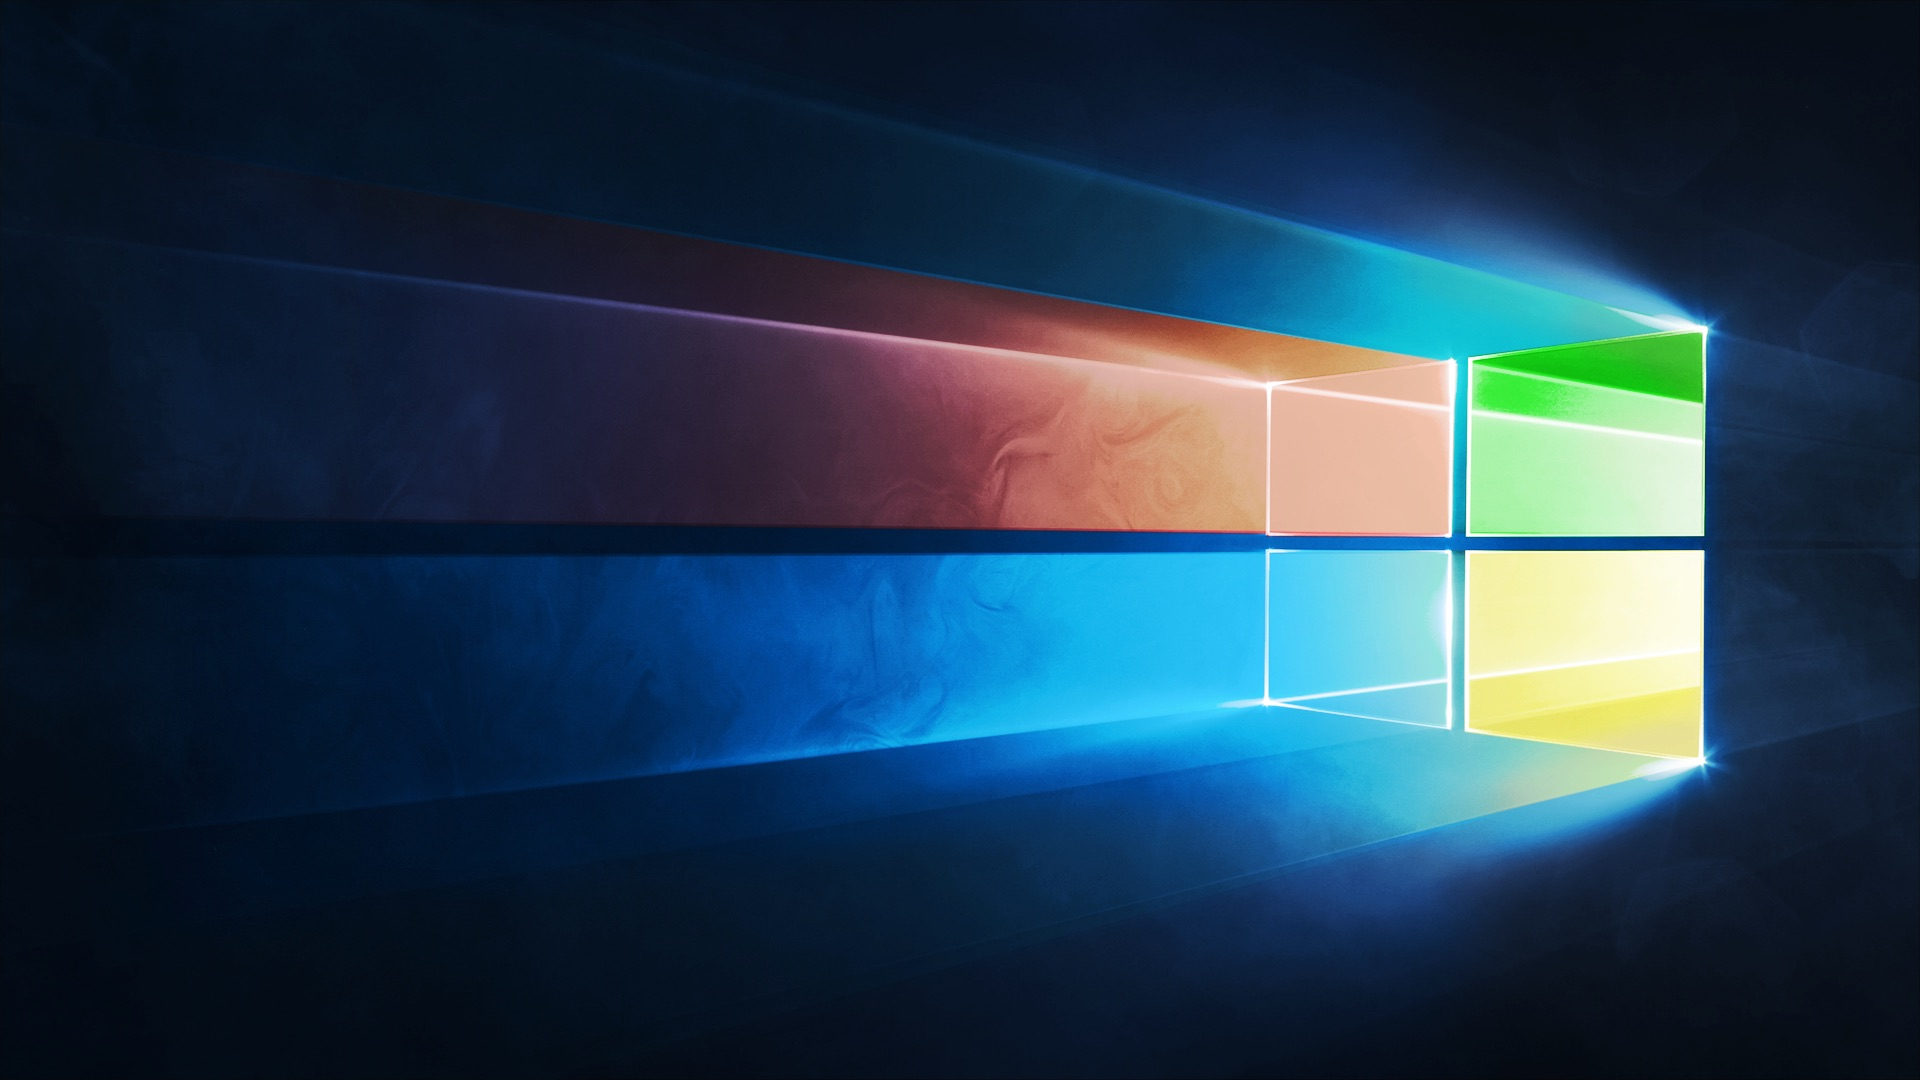 Windows 10 vs. Windows 8.1 vs. Windows 7 Performance ...